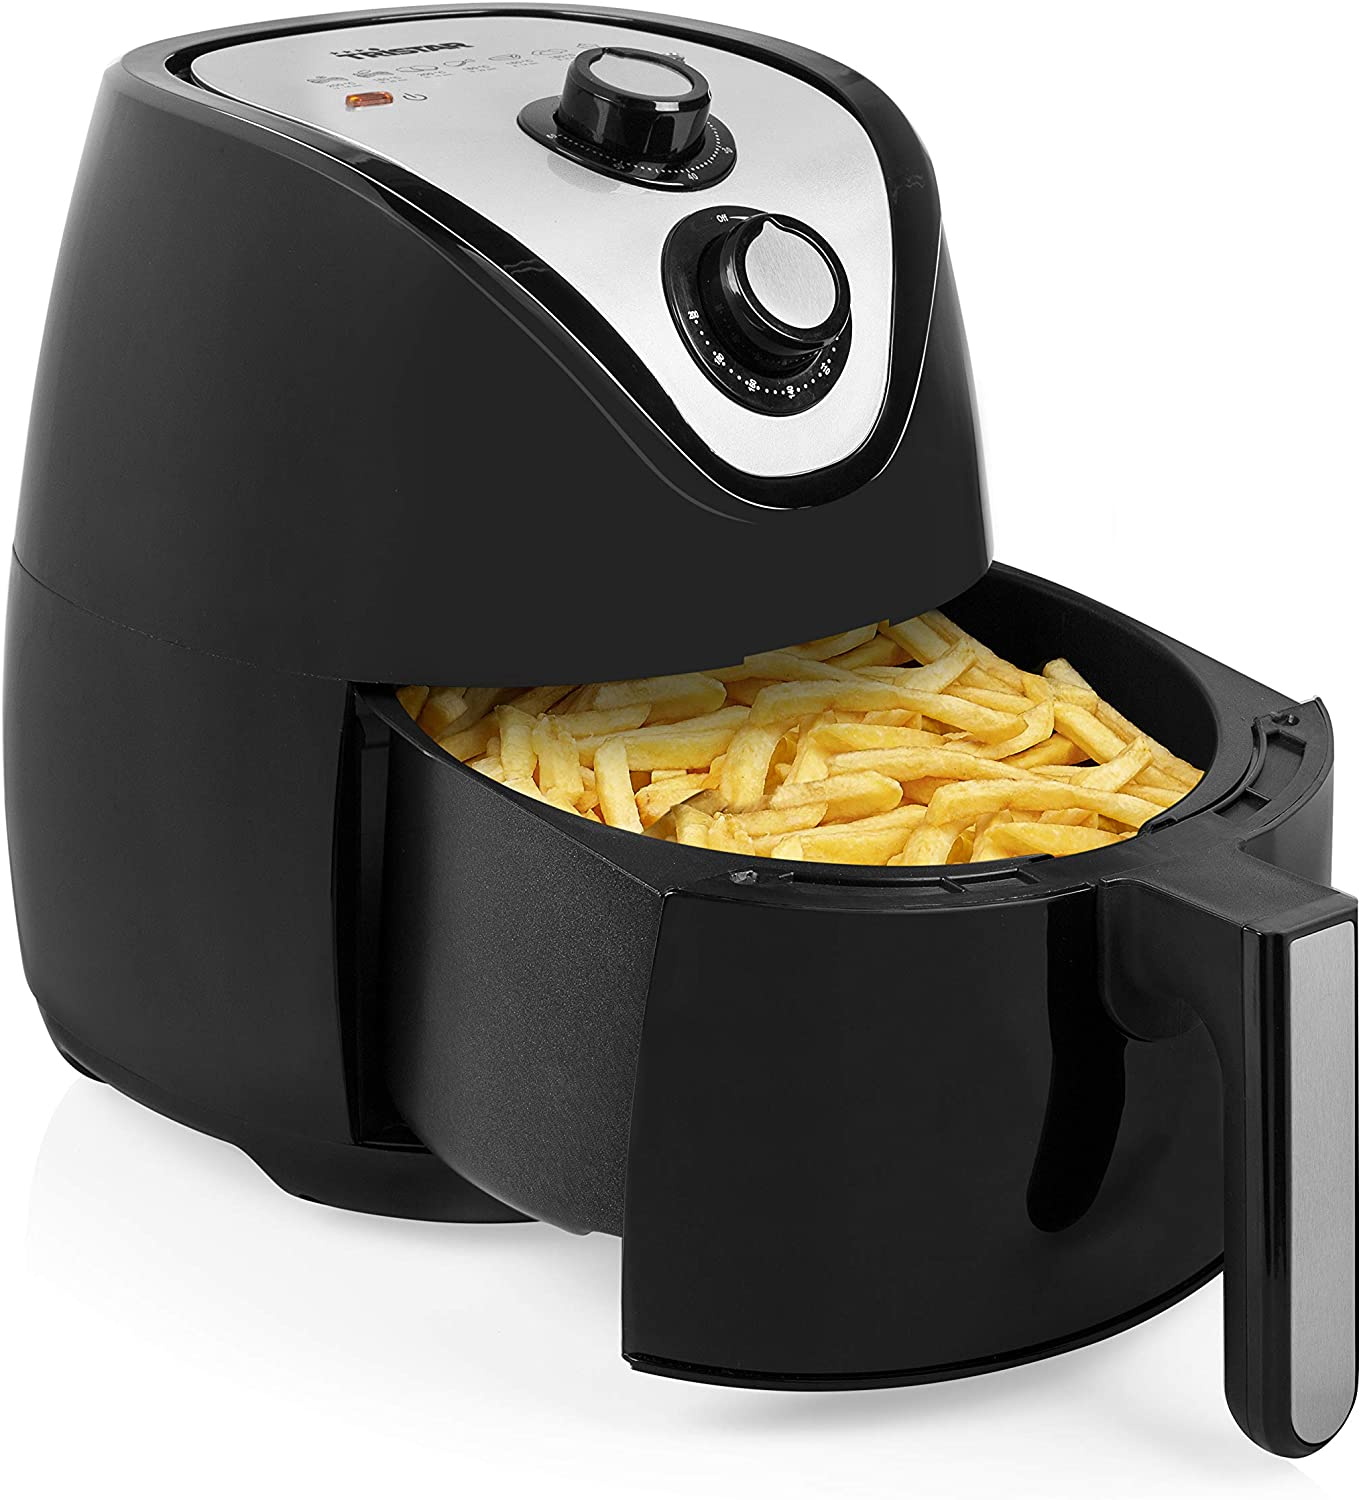 Tristar FR-6994 Fryer Hot air Fryer 4.5 L 1500 W - Outlet Product